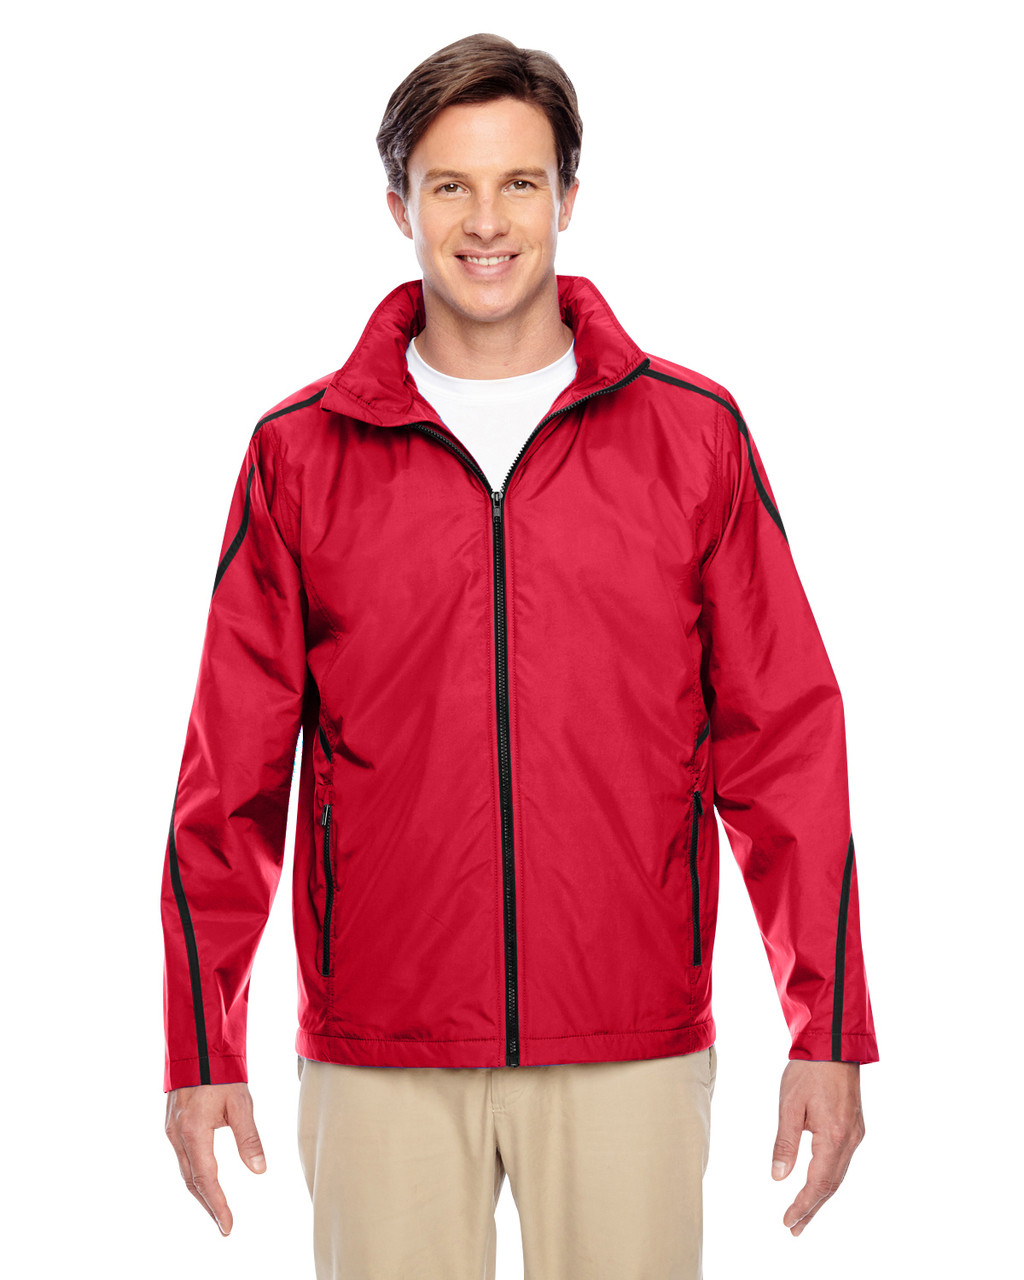 Sport Red - TT72 Team 365 Conquest Jacket with Fleece Lining | BlankClothing.ca